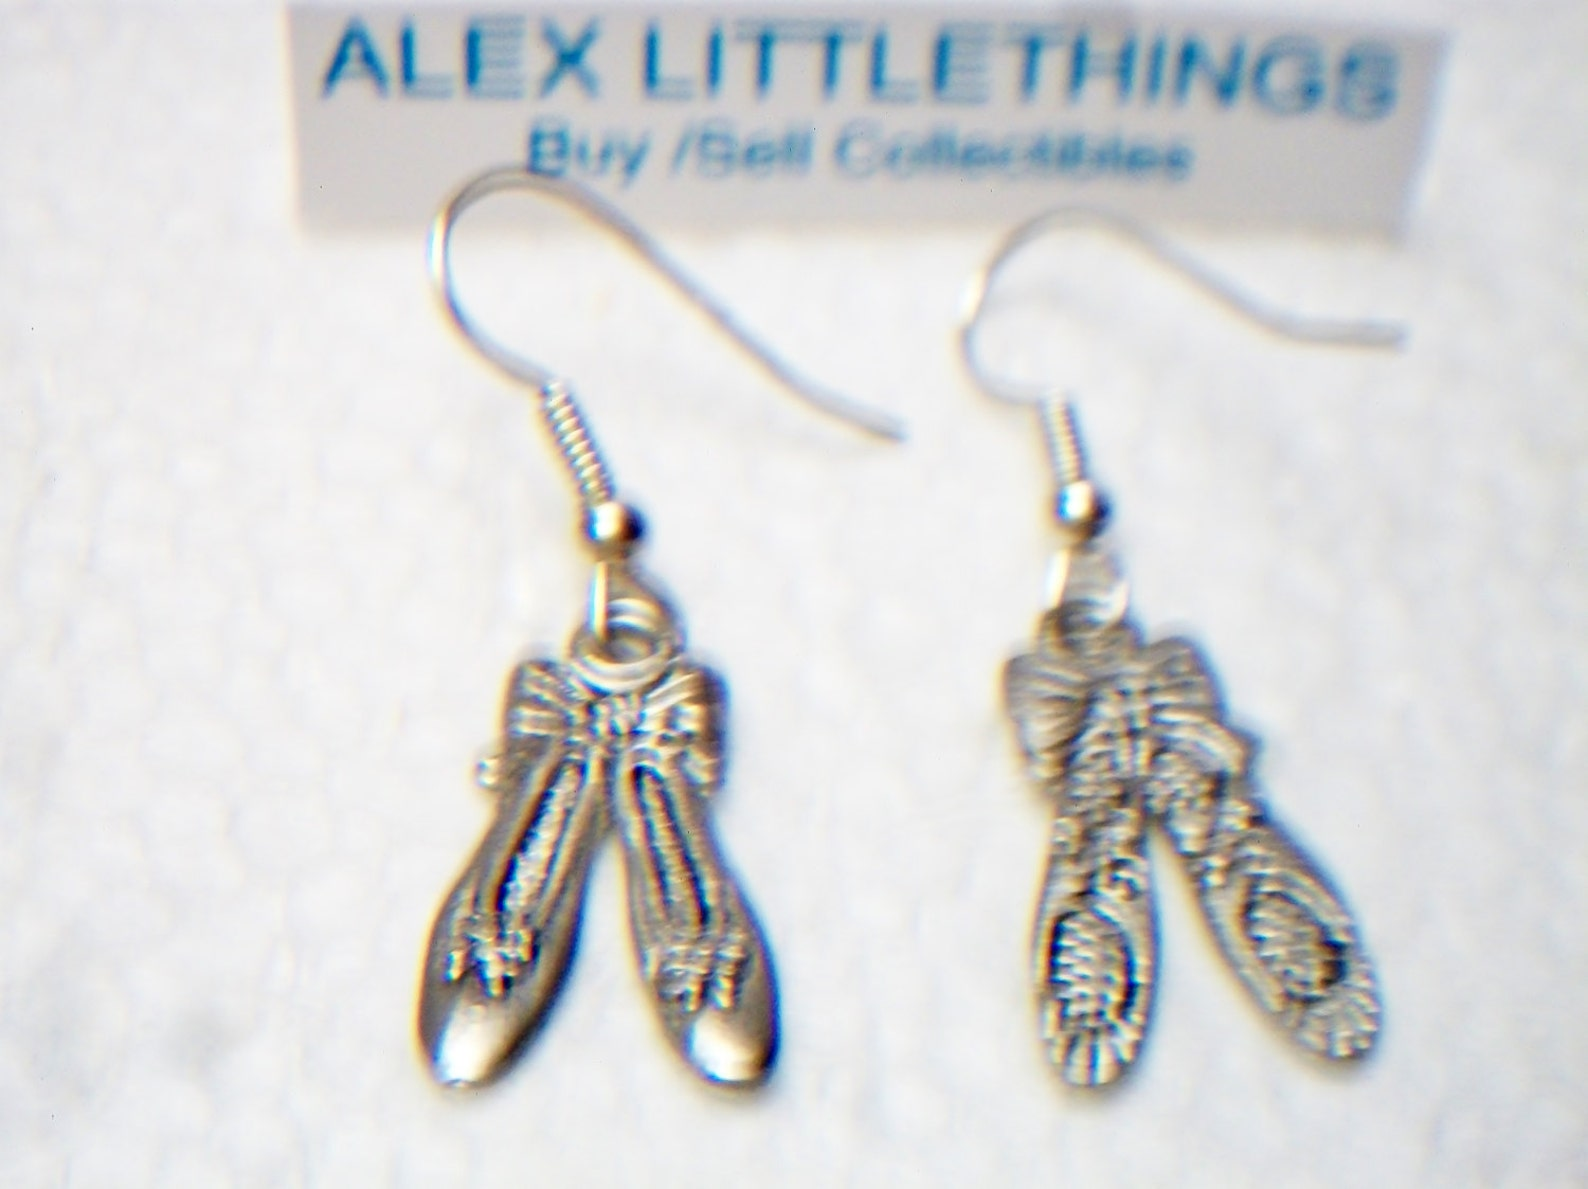 ballet slipper dangle earrings silver tone ballerina charm jewelry fashion accessories for her hand made